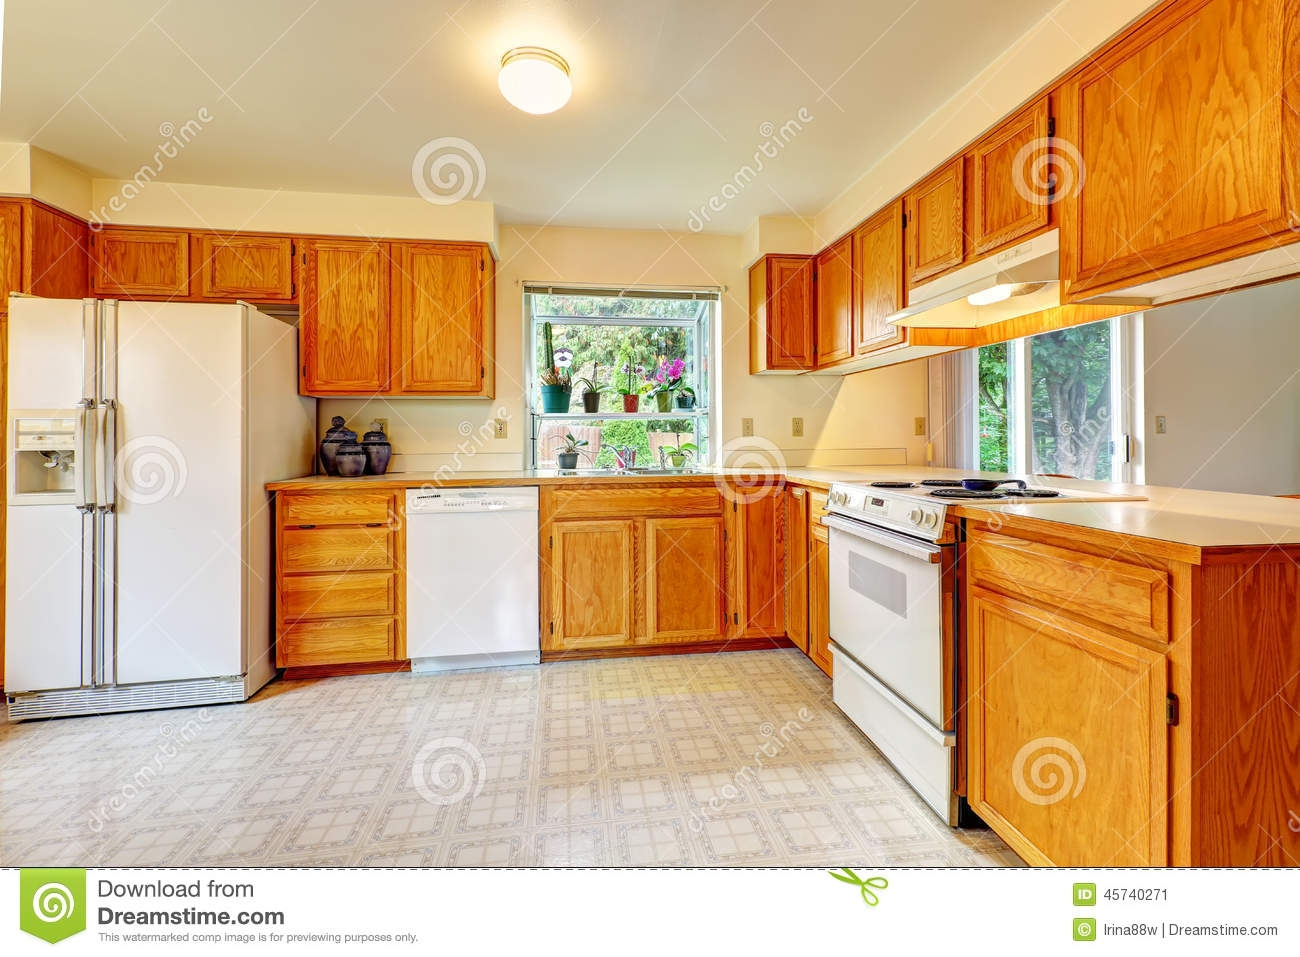 Kitchens With Maple Cabinets And White Appliances